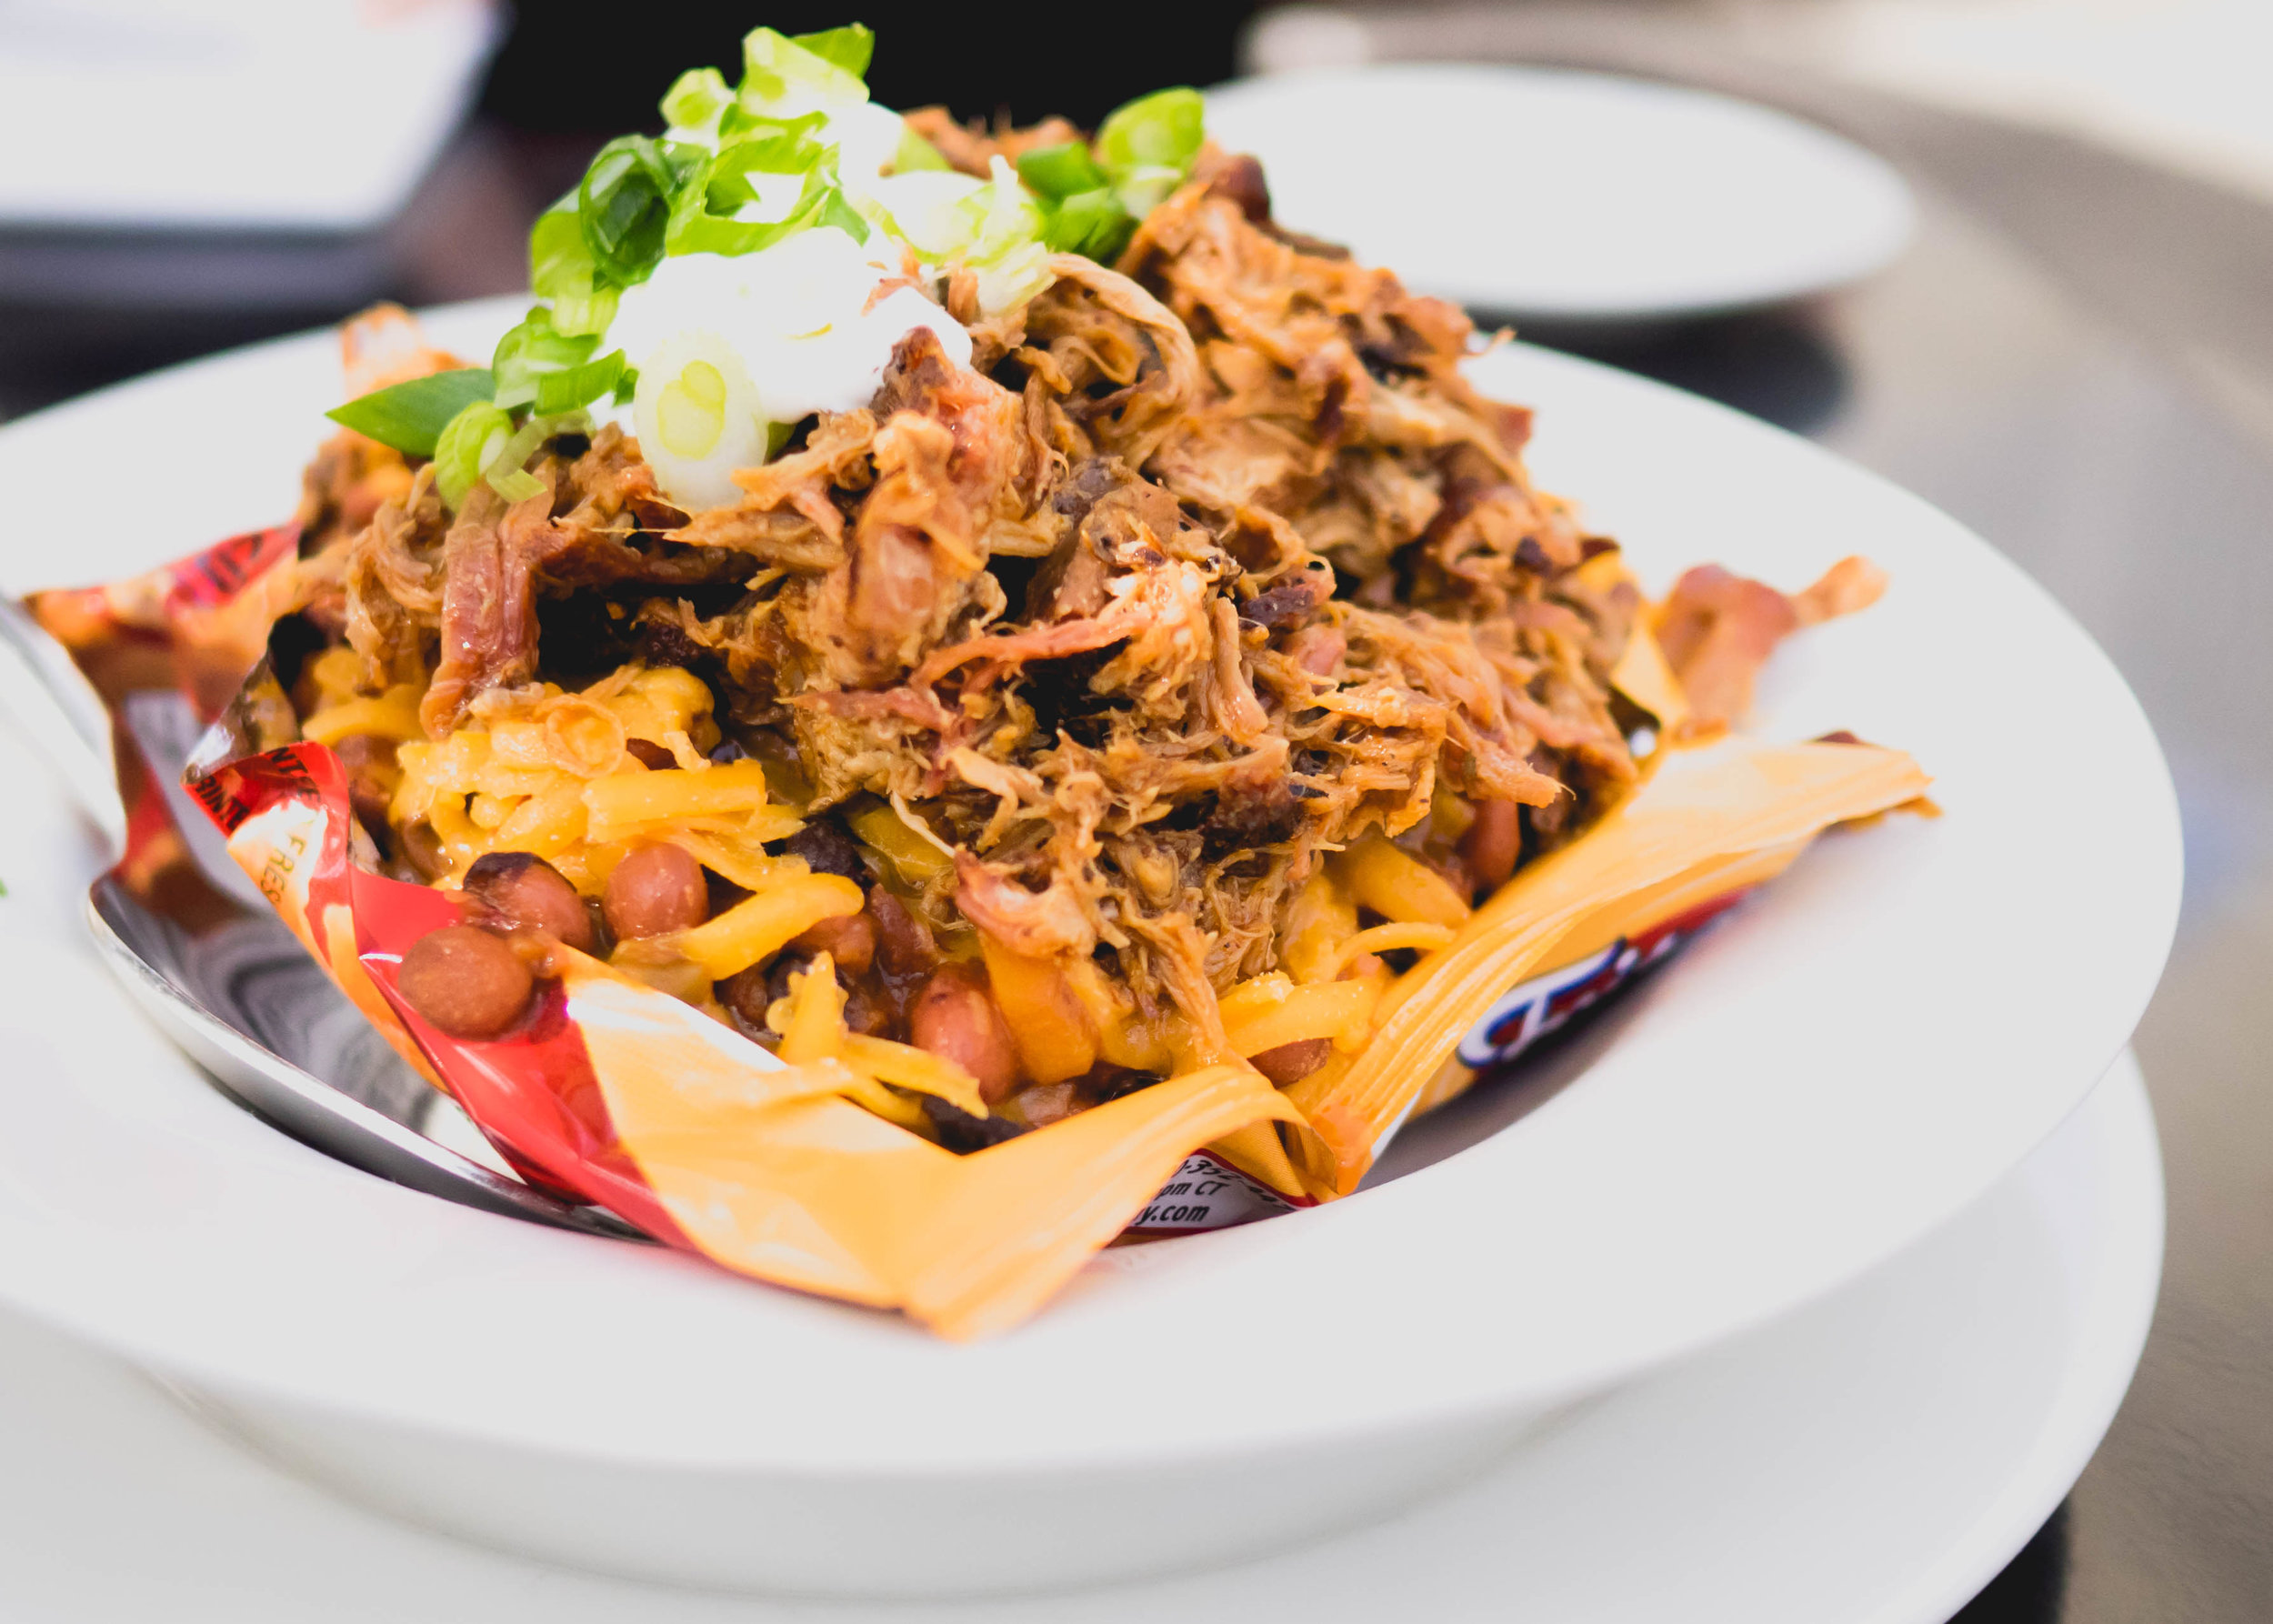 frito pie : bag of fritos topped with chili, triple chop of BBQ meats, cheddar cheese, sour cream, green onions